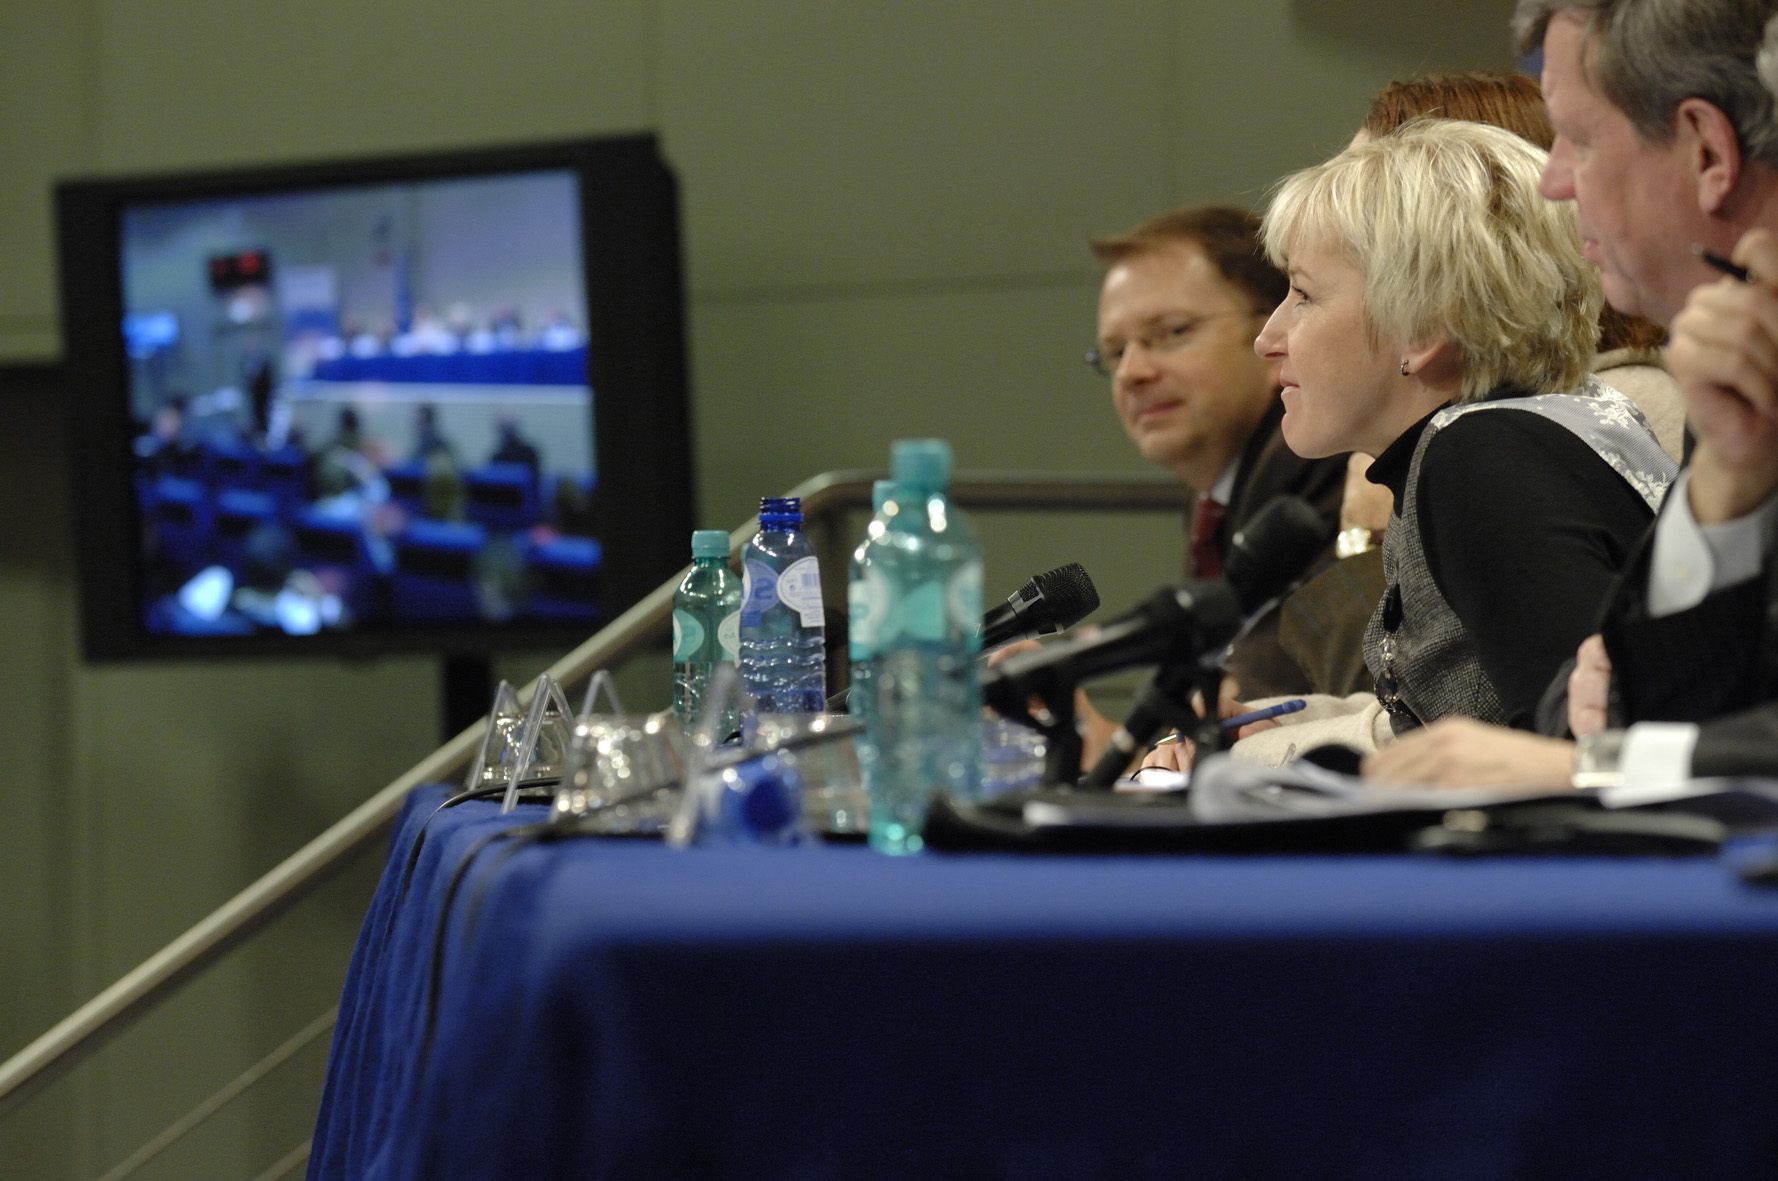 Participation of Margot Wallström, Vice-President of the EC, in the Plan D closing plenary session